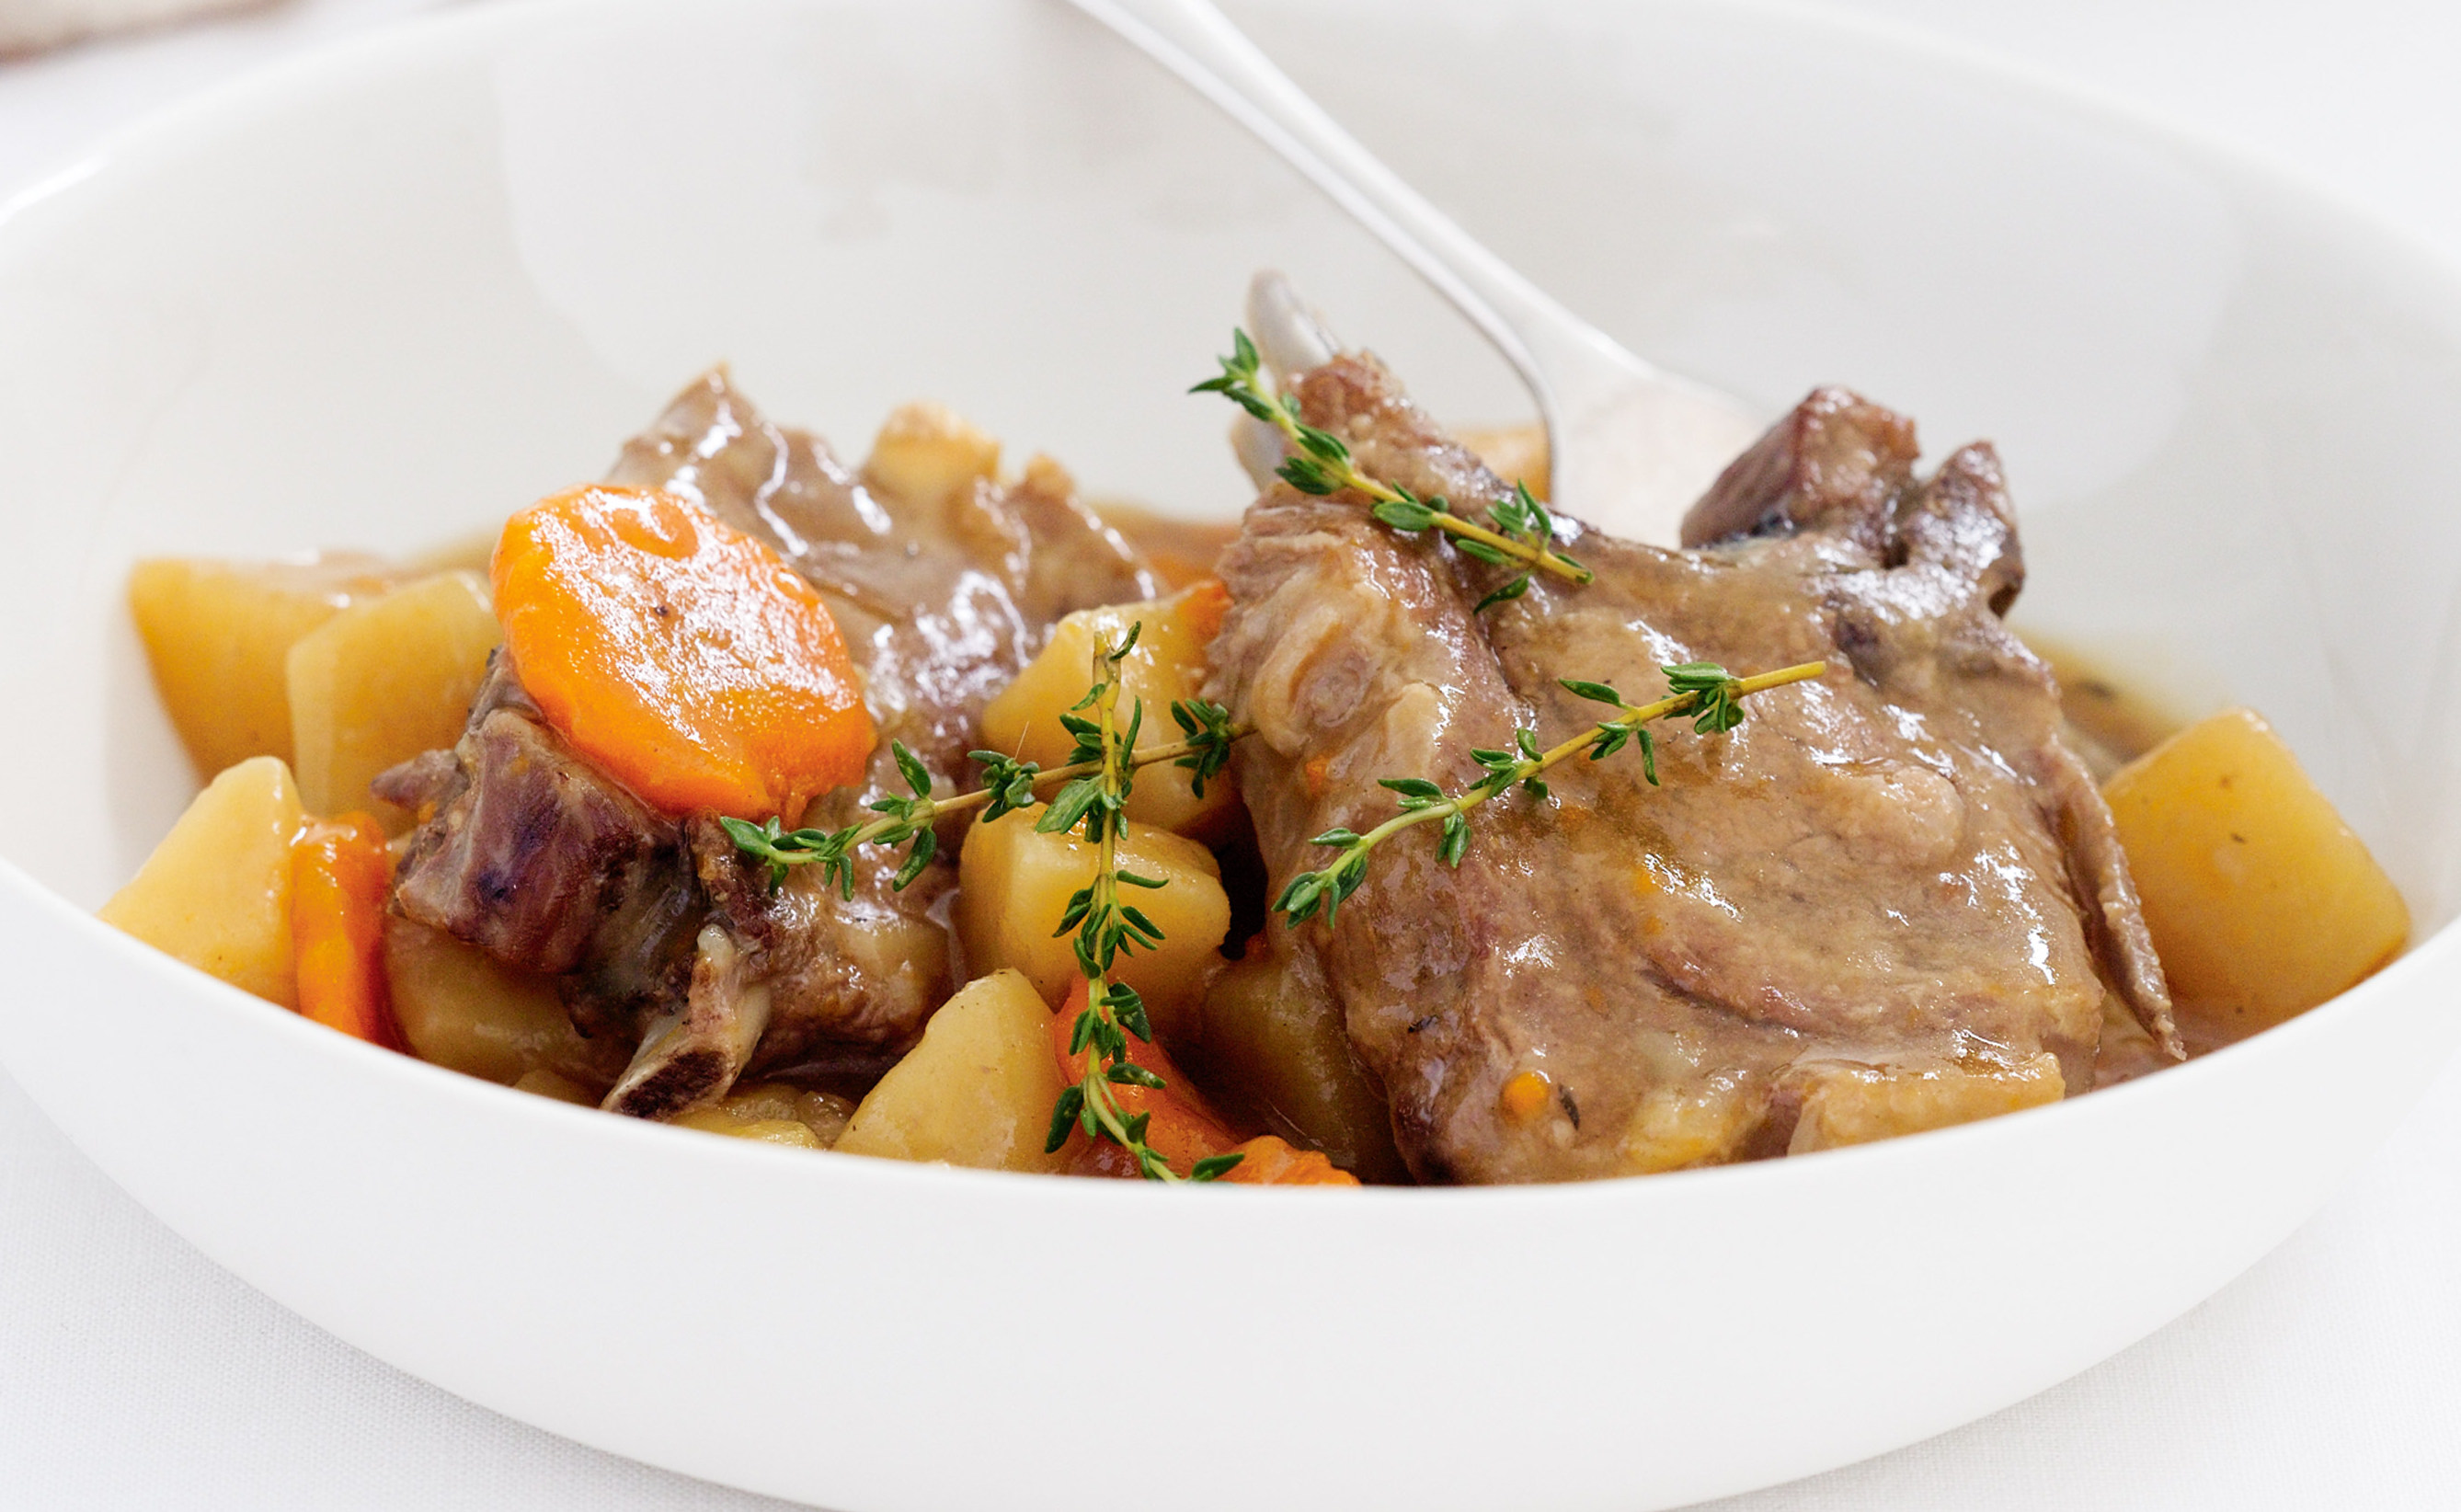 St Patrick's Day Irish stew recipe: How to make it the right way